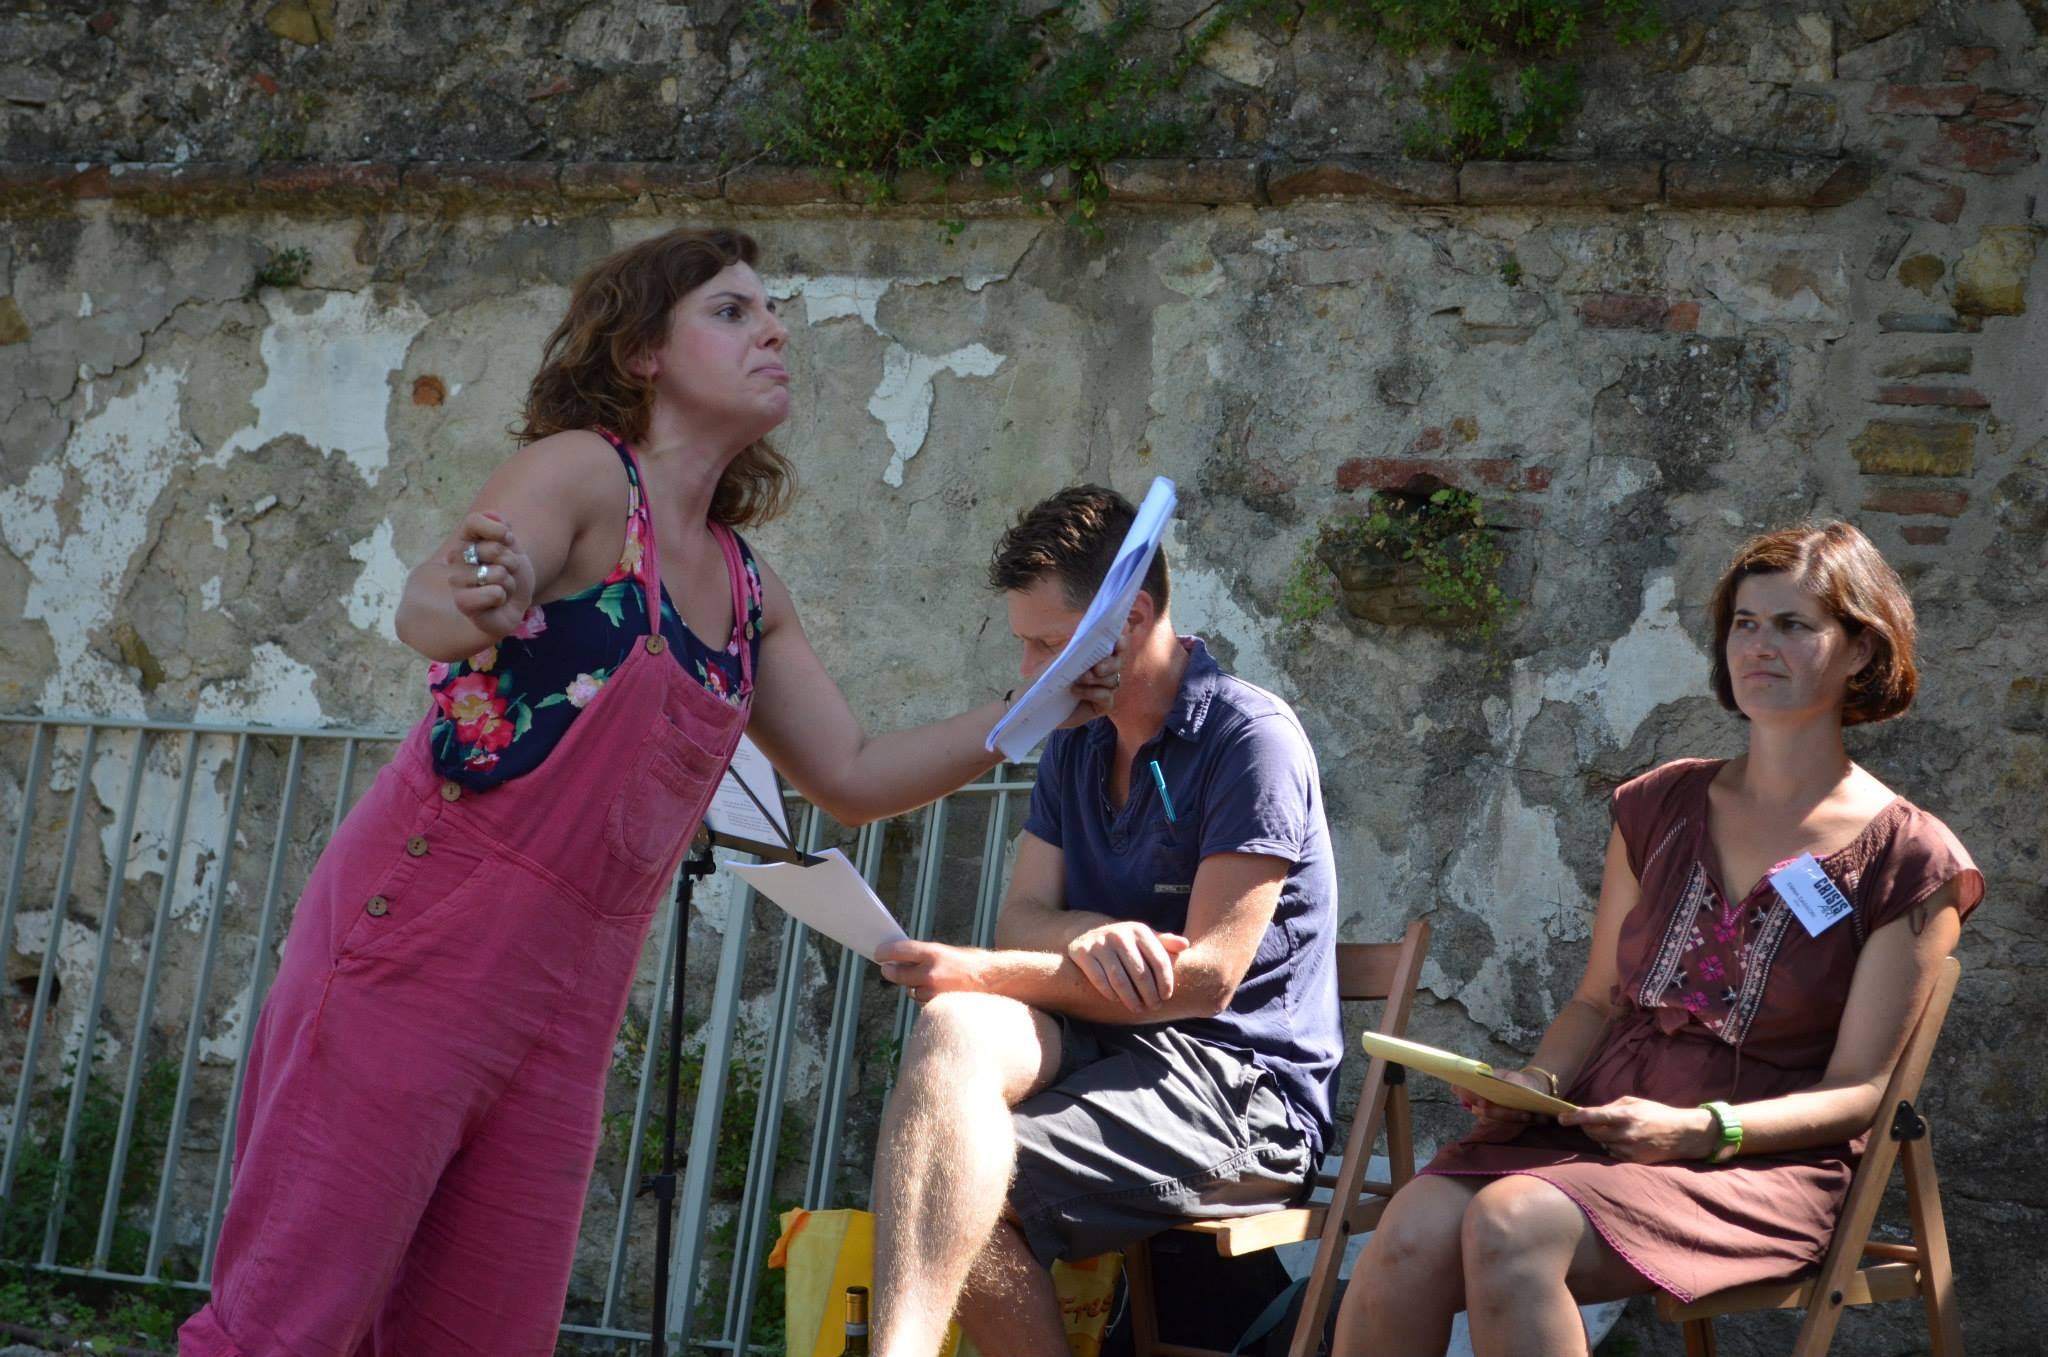 Italy clowning outdoor with script.jpg